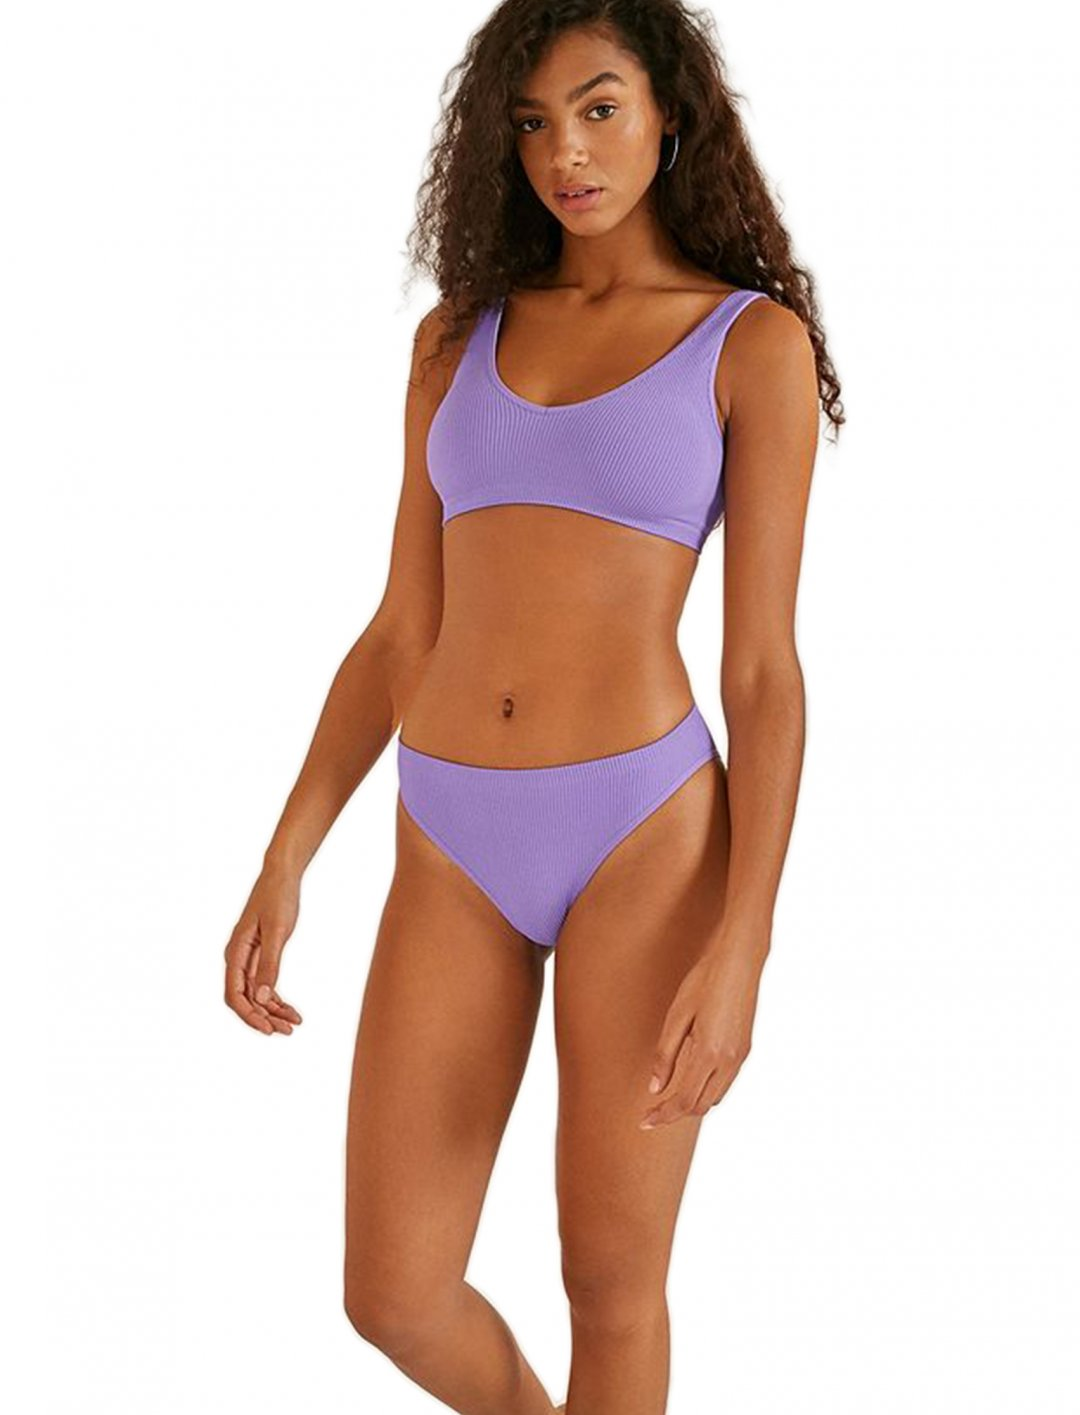 """Ella Eyre's Bra {""""id"""":5,""""product_section_id"""":1,""""name"""":""""Clothing"""",""""order"""":5} Out From Under"""